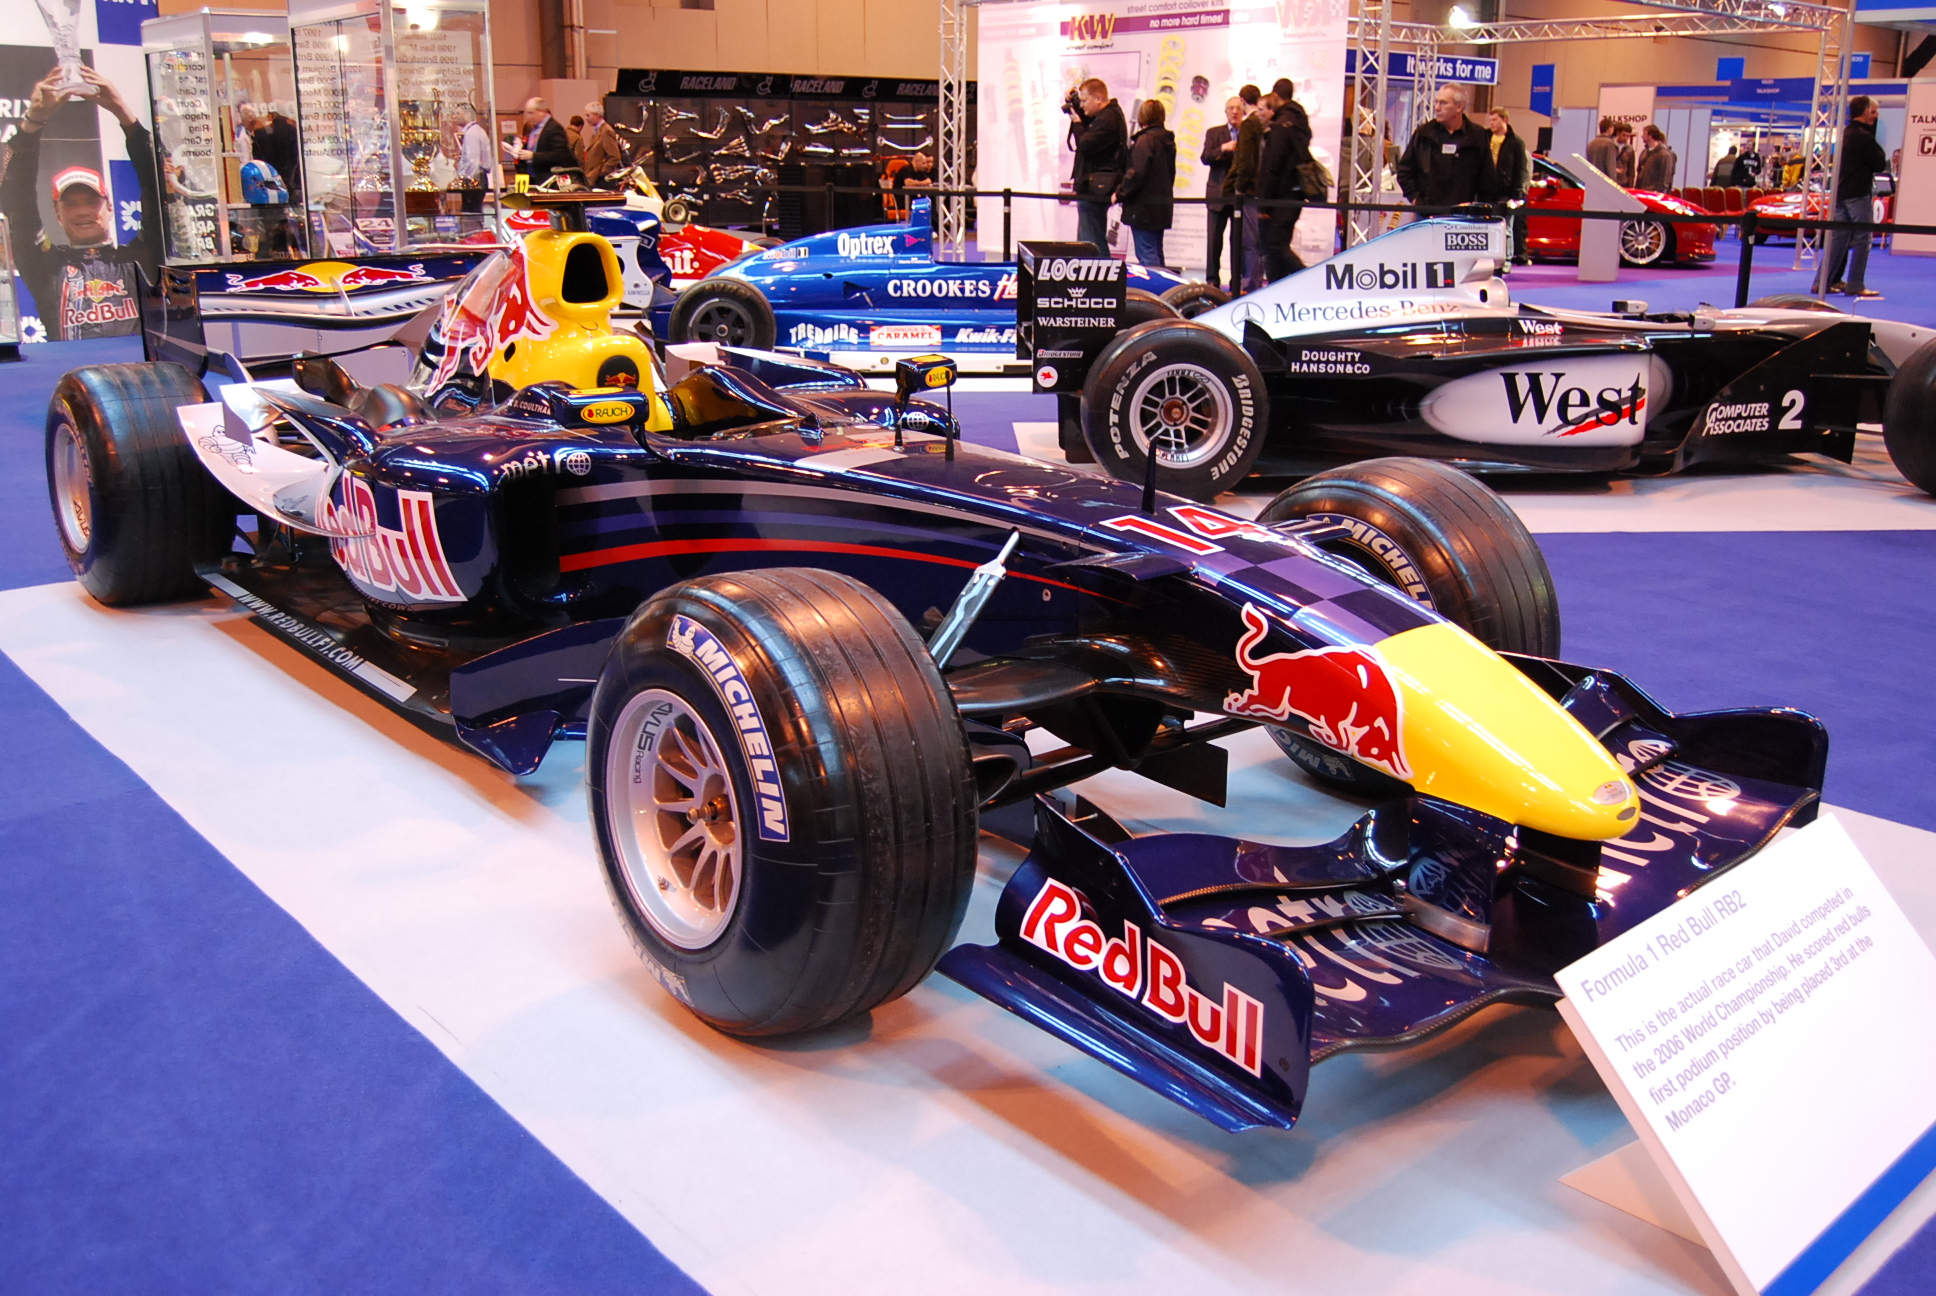 Red bull rb2 photo - 10